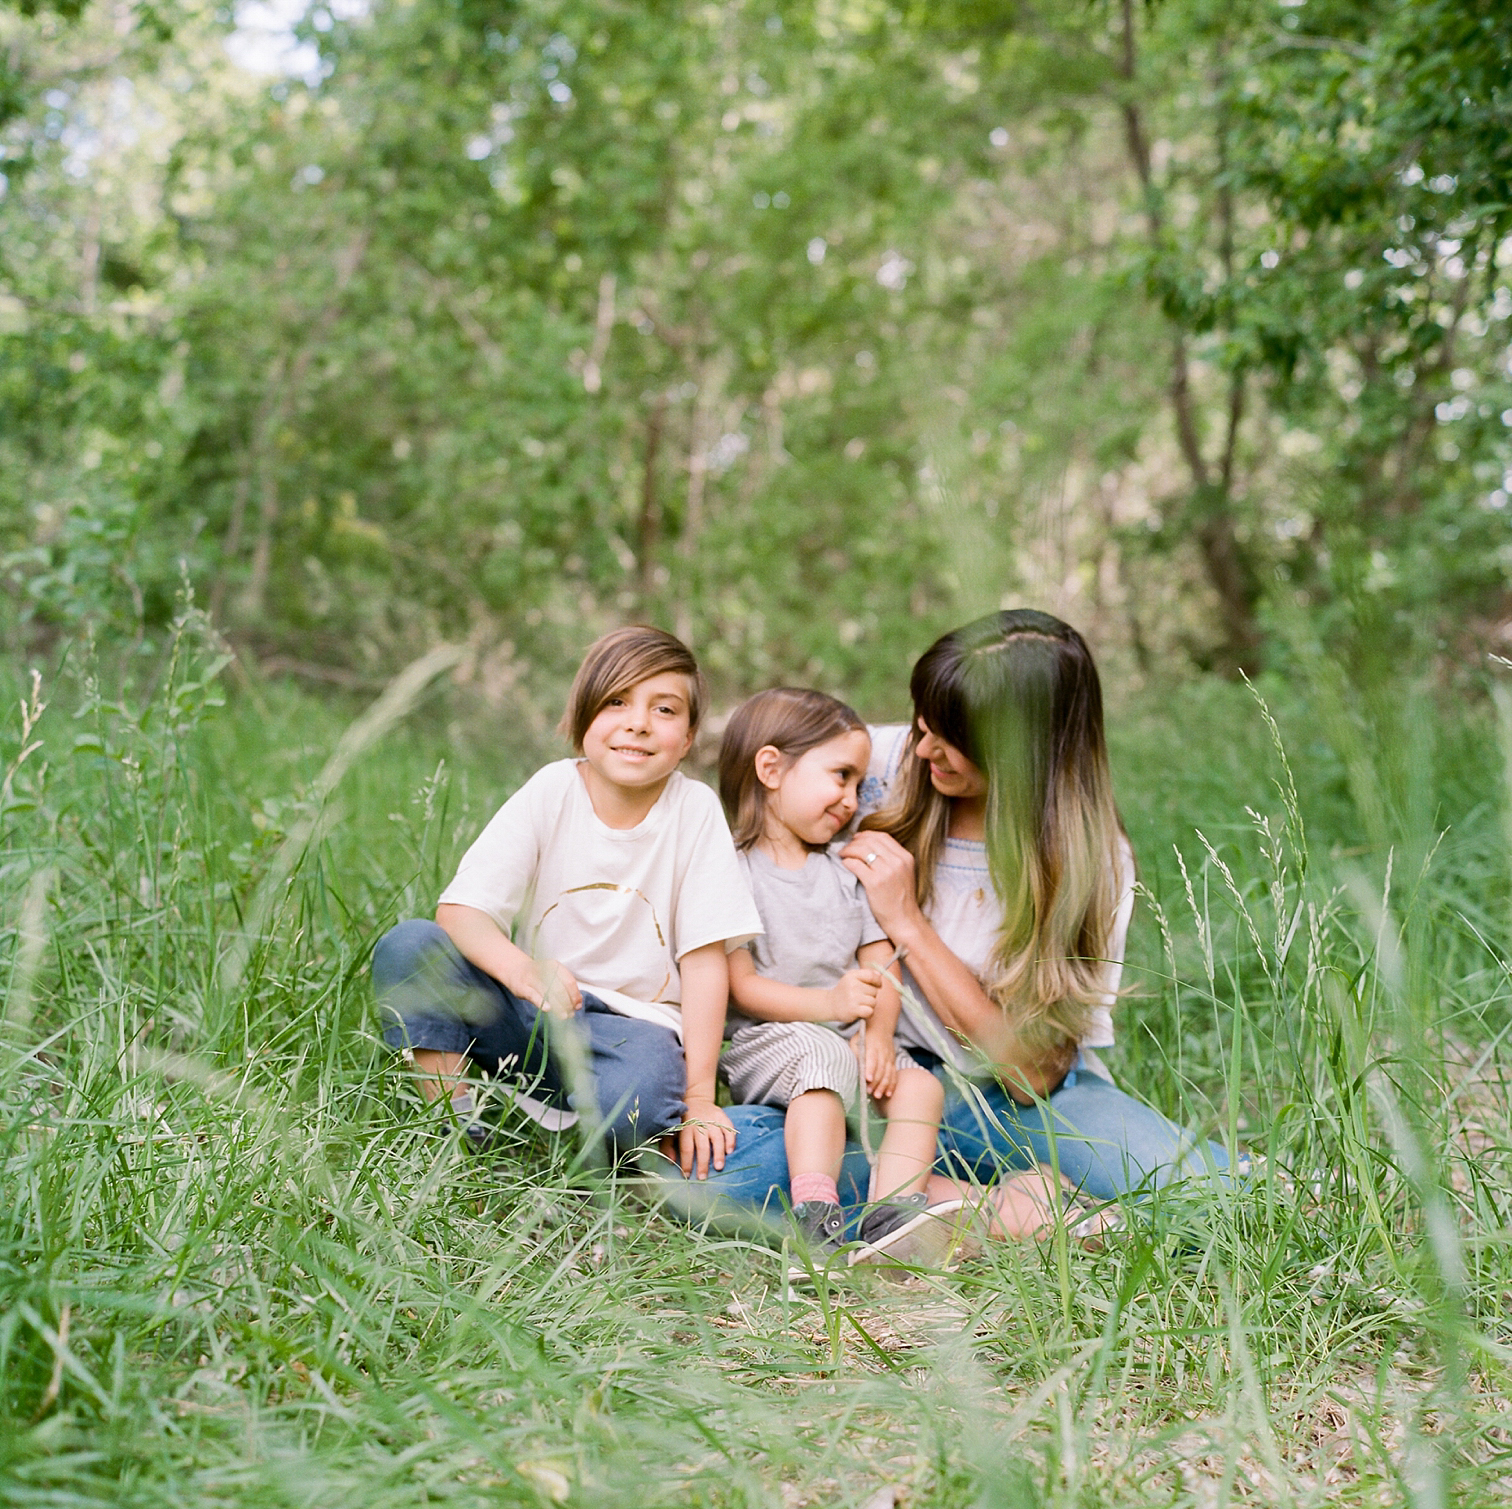 Film Photographers, Colorado Family Portraits, Fort Collins Portrait Photographer, Mom with Children In Grass, Summer Family Portraits